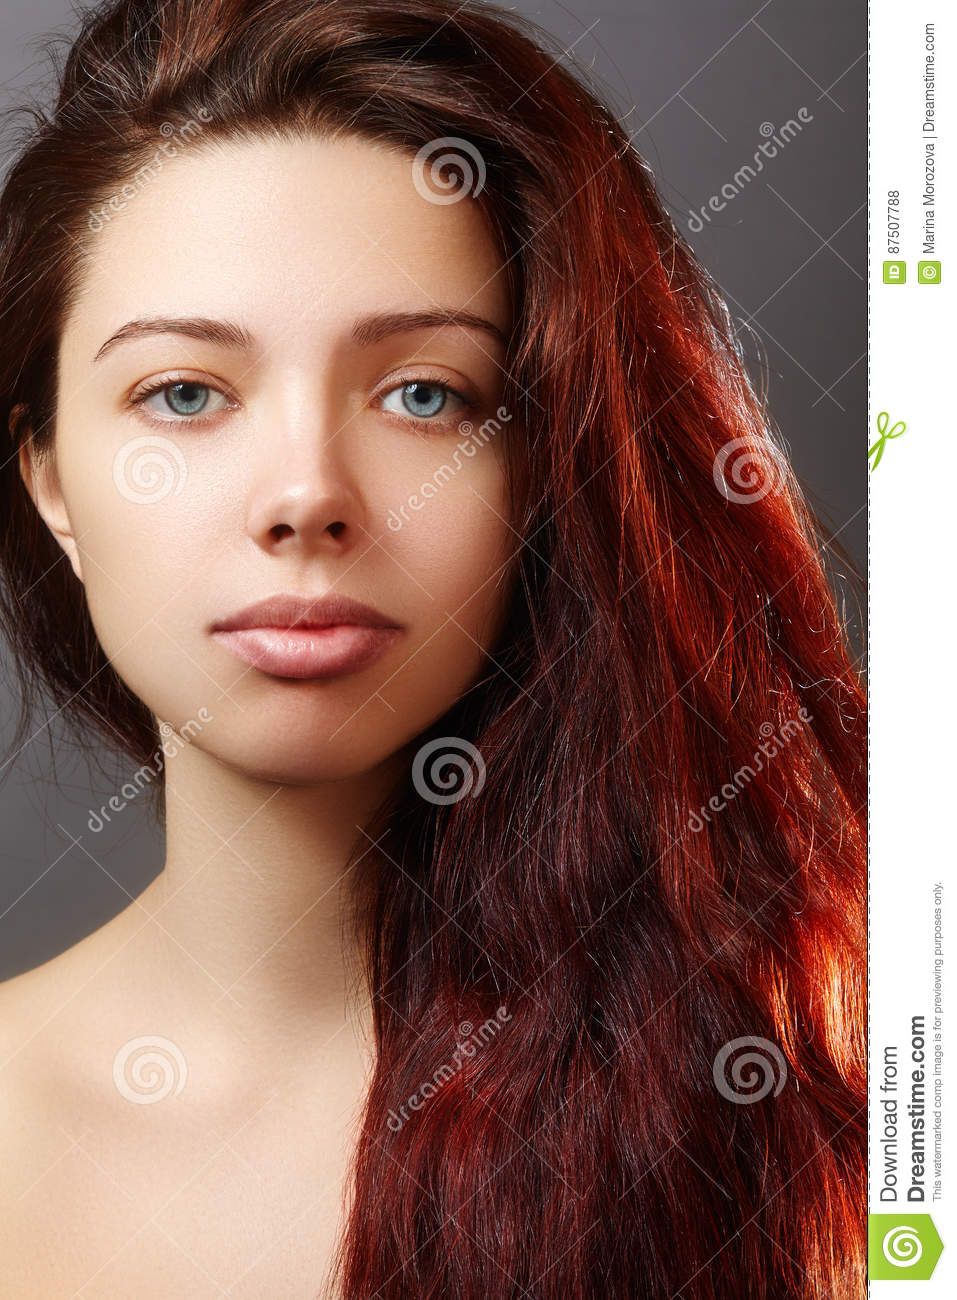 Beautiful ginger young woman with luxury hair style and fashion gloss makeup. Beauty closeup model